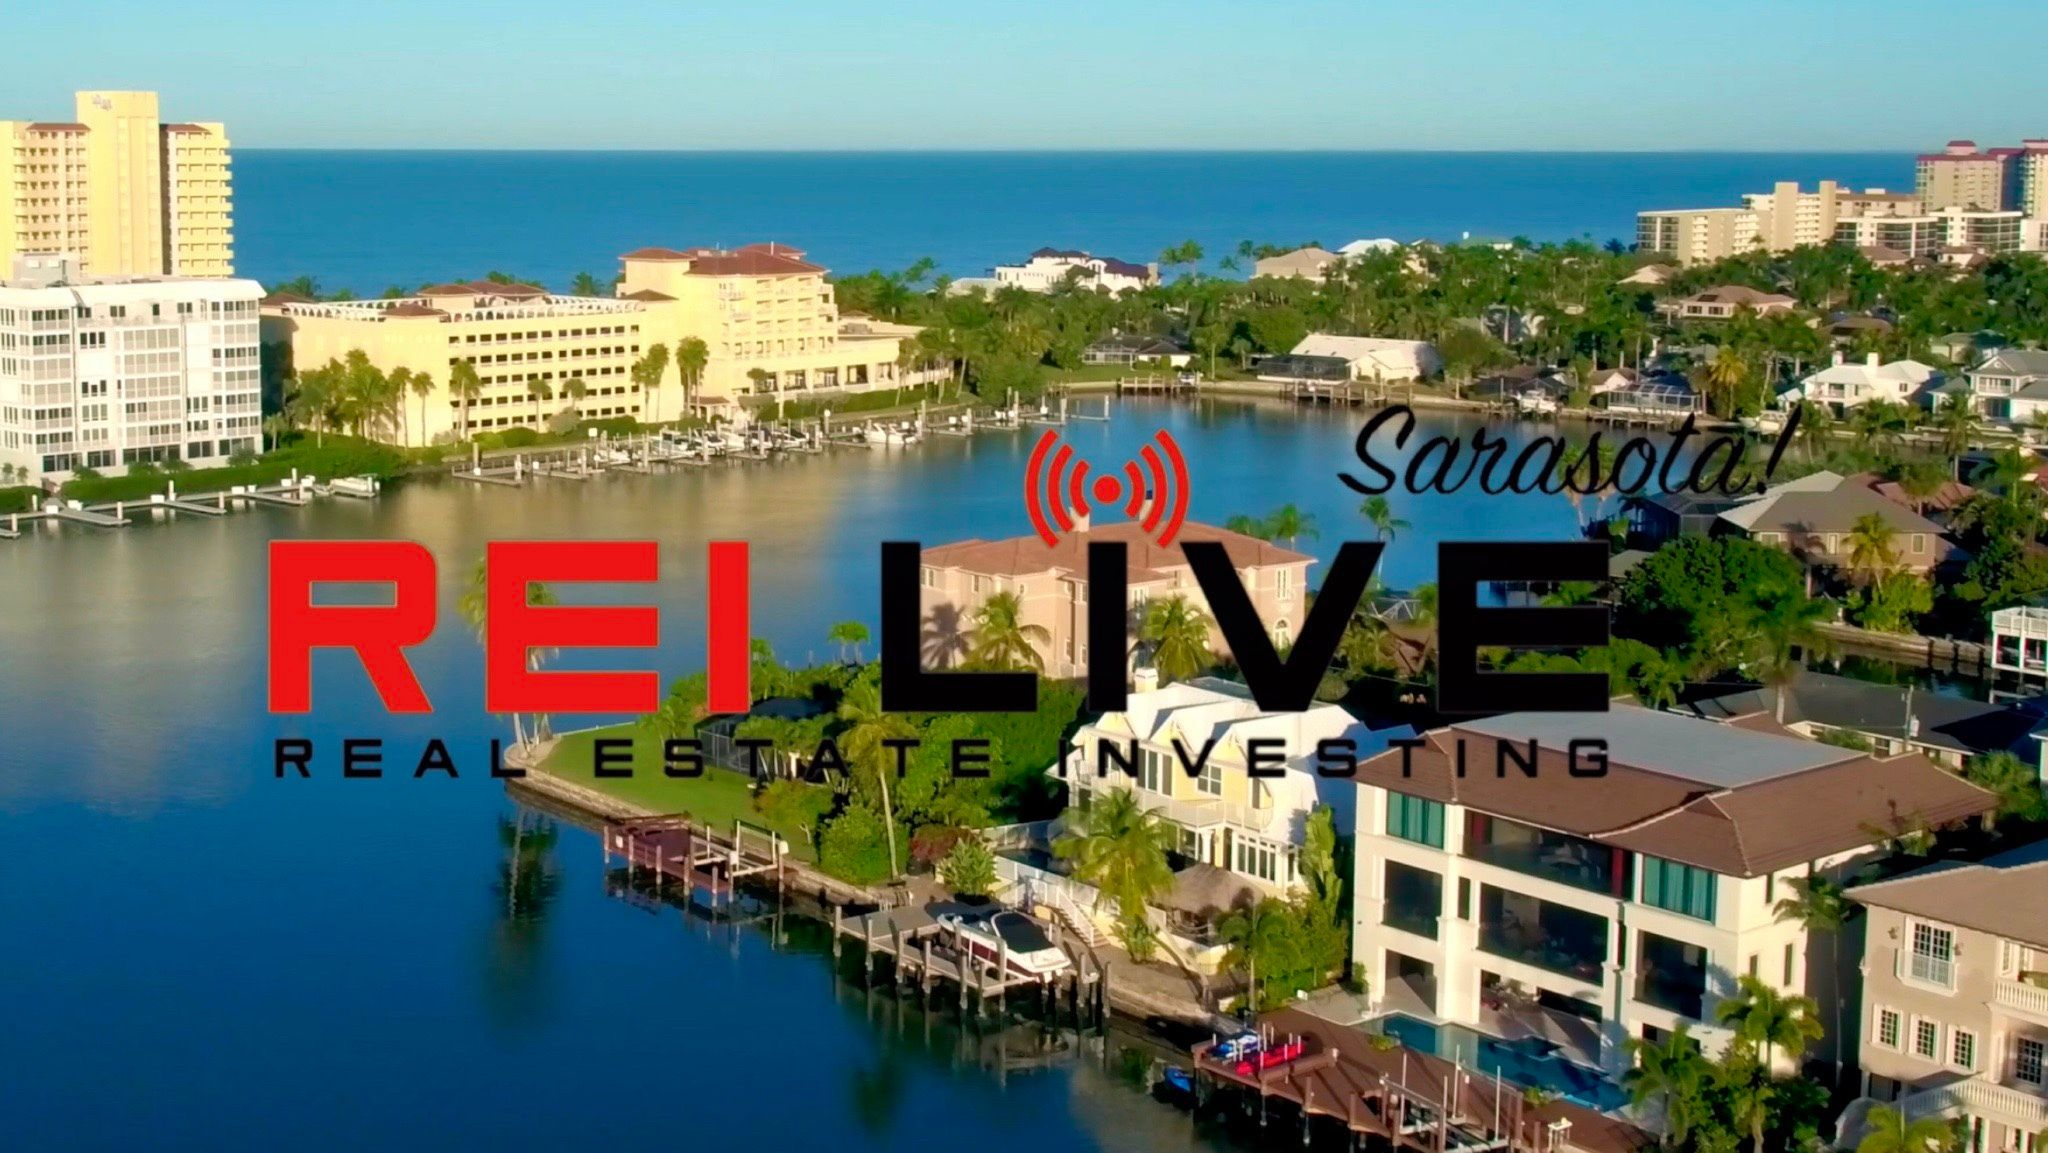 Southwest florida real estate investment association milwaukee real time live quotes forexworld